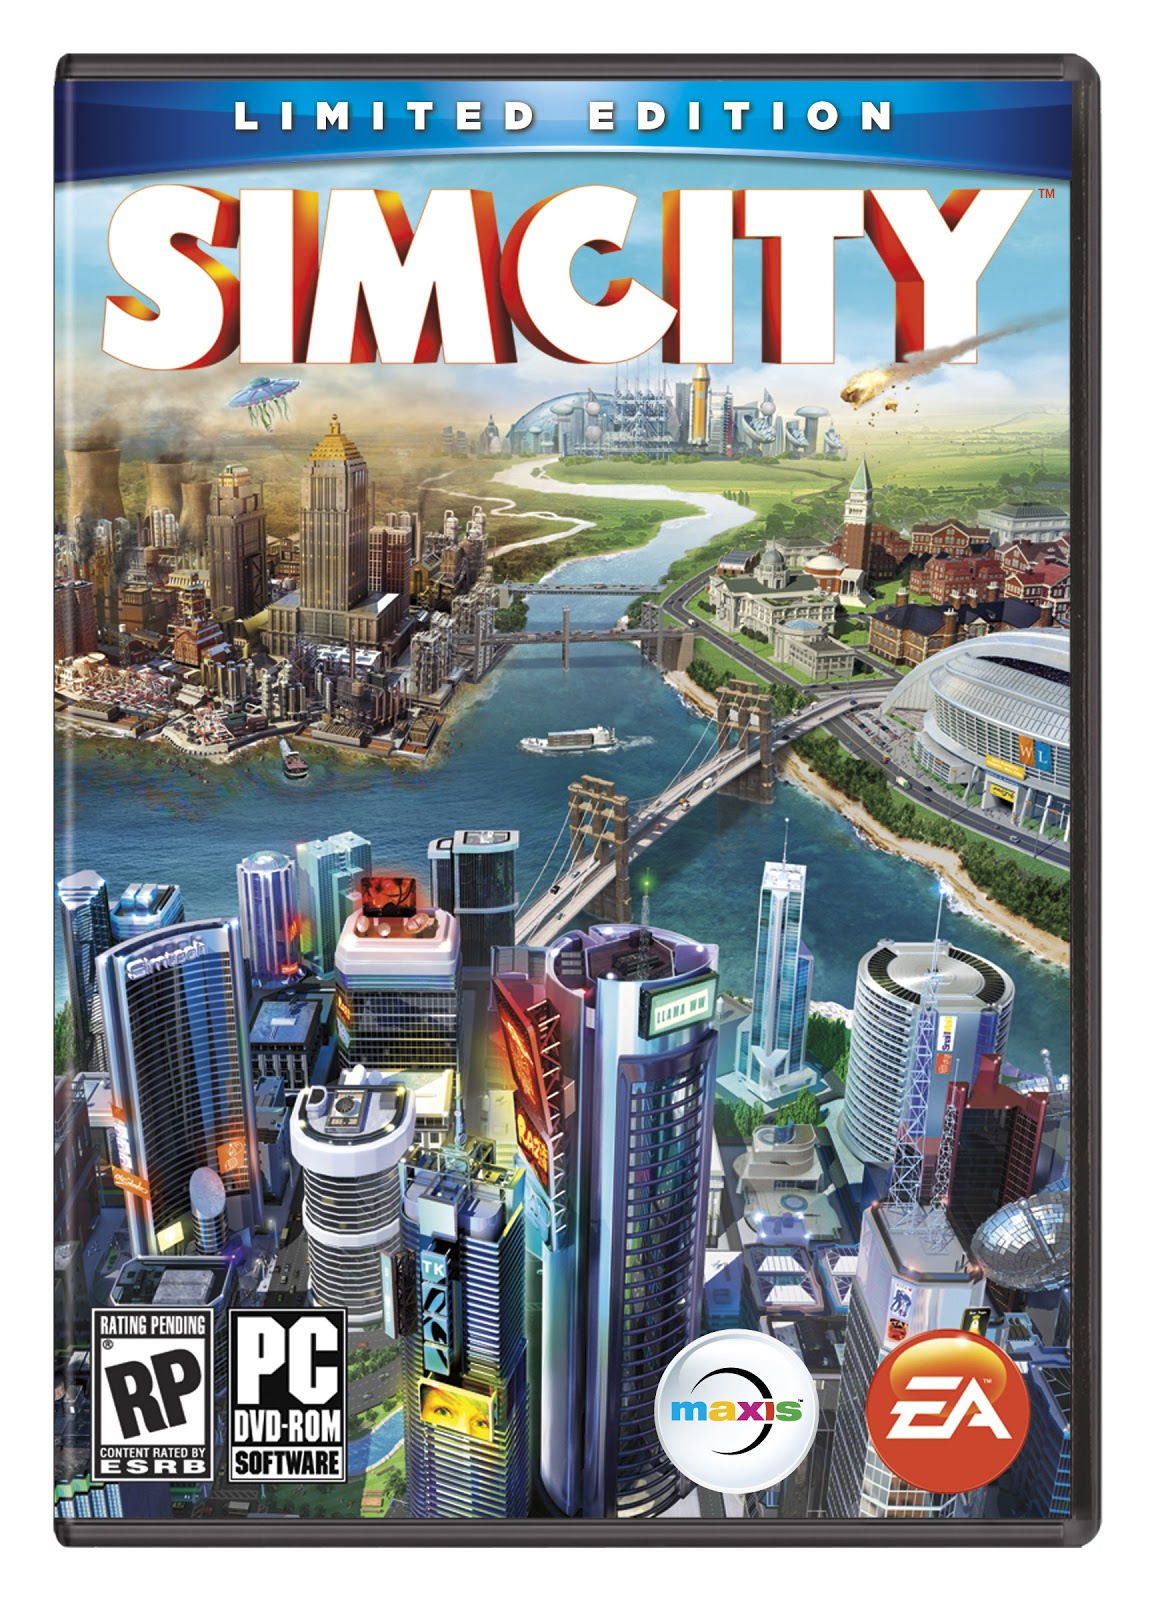 Free Download SimCity Games Full Version For PS3, PS4, PSP